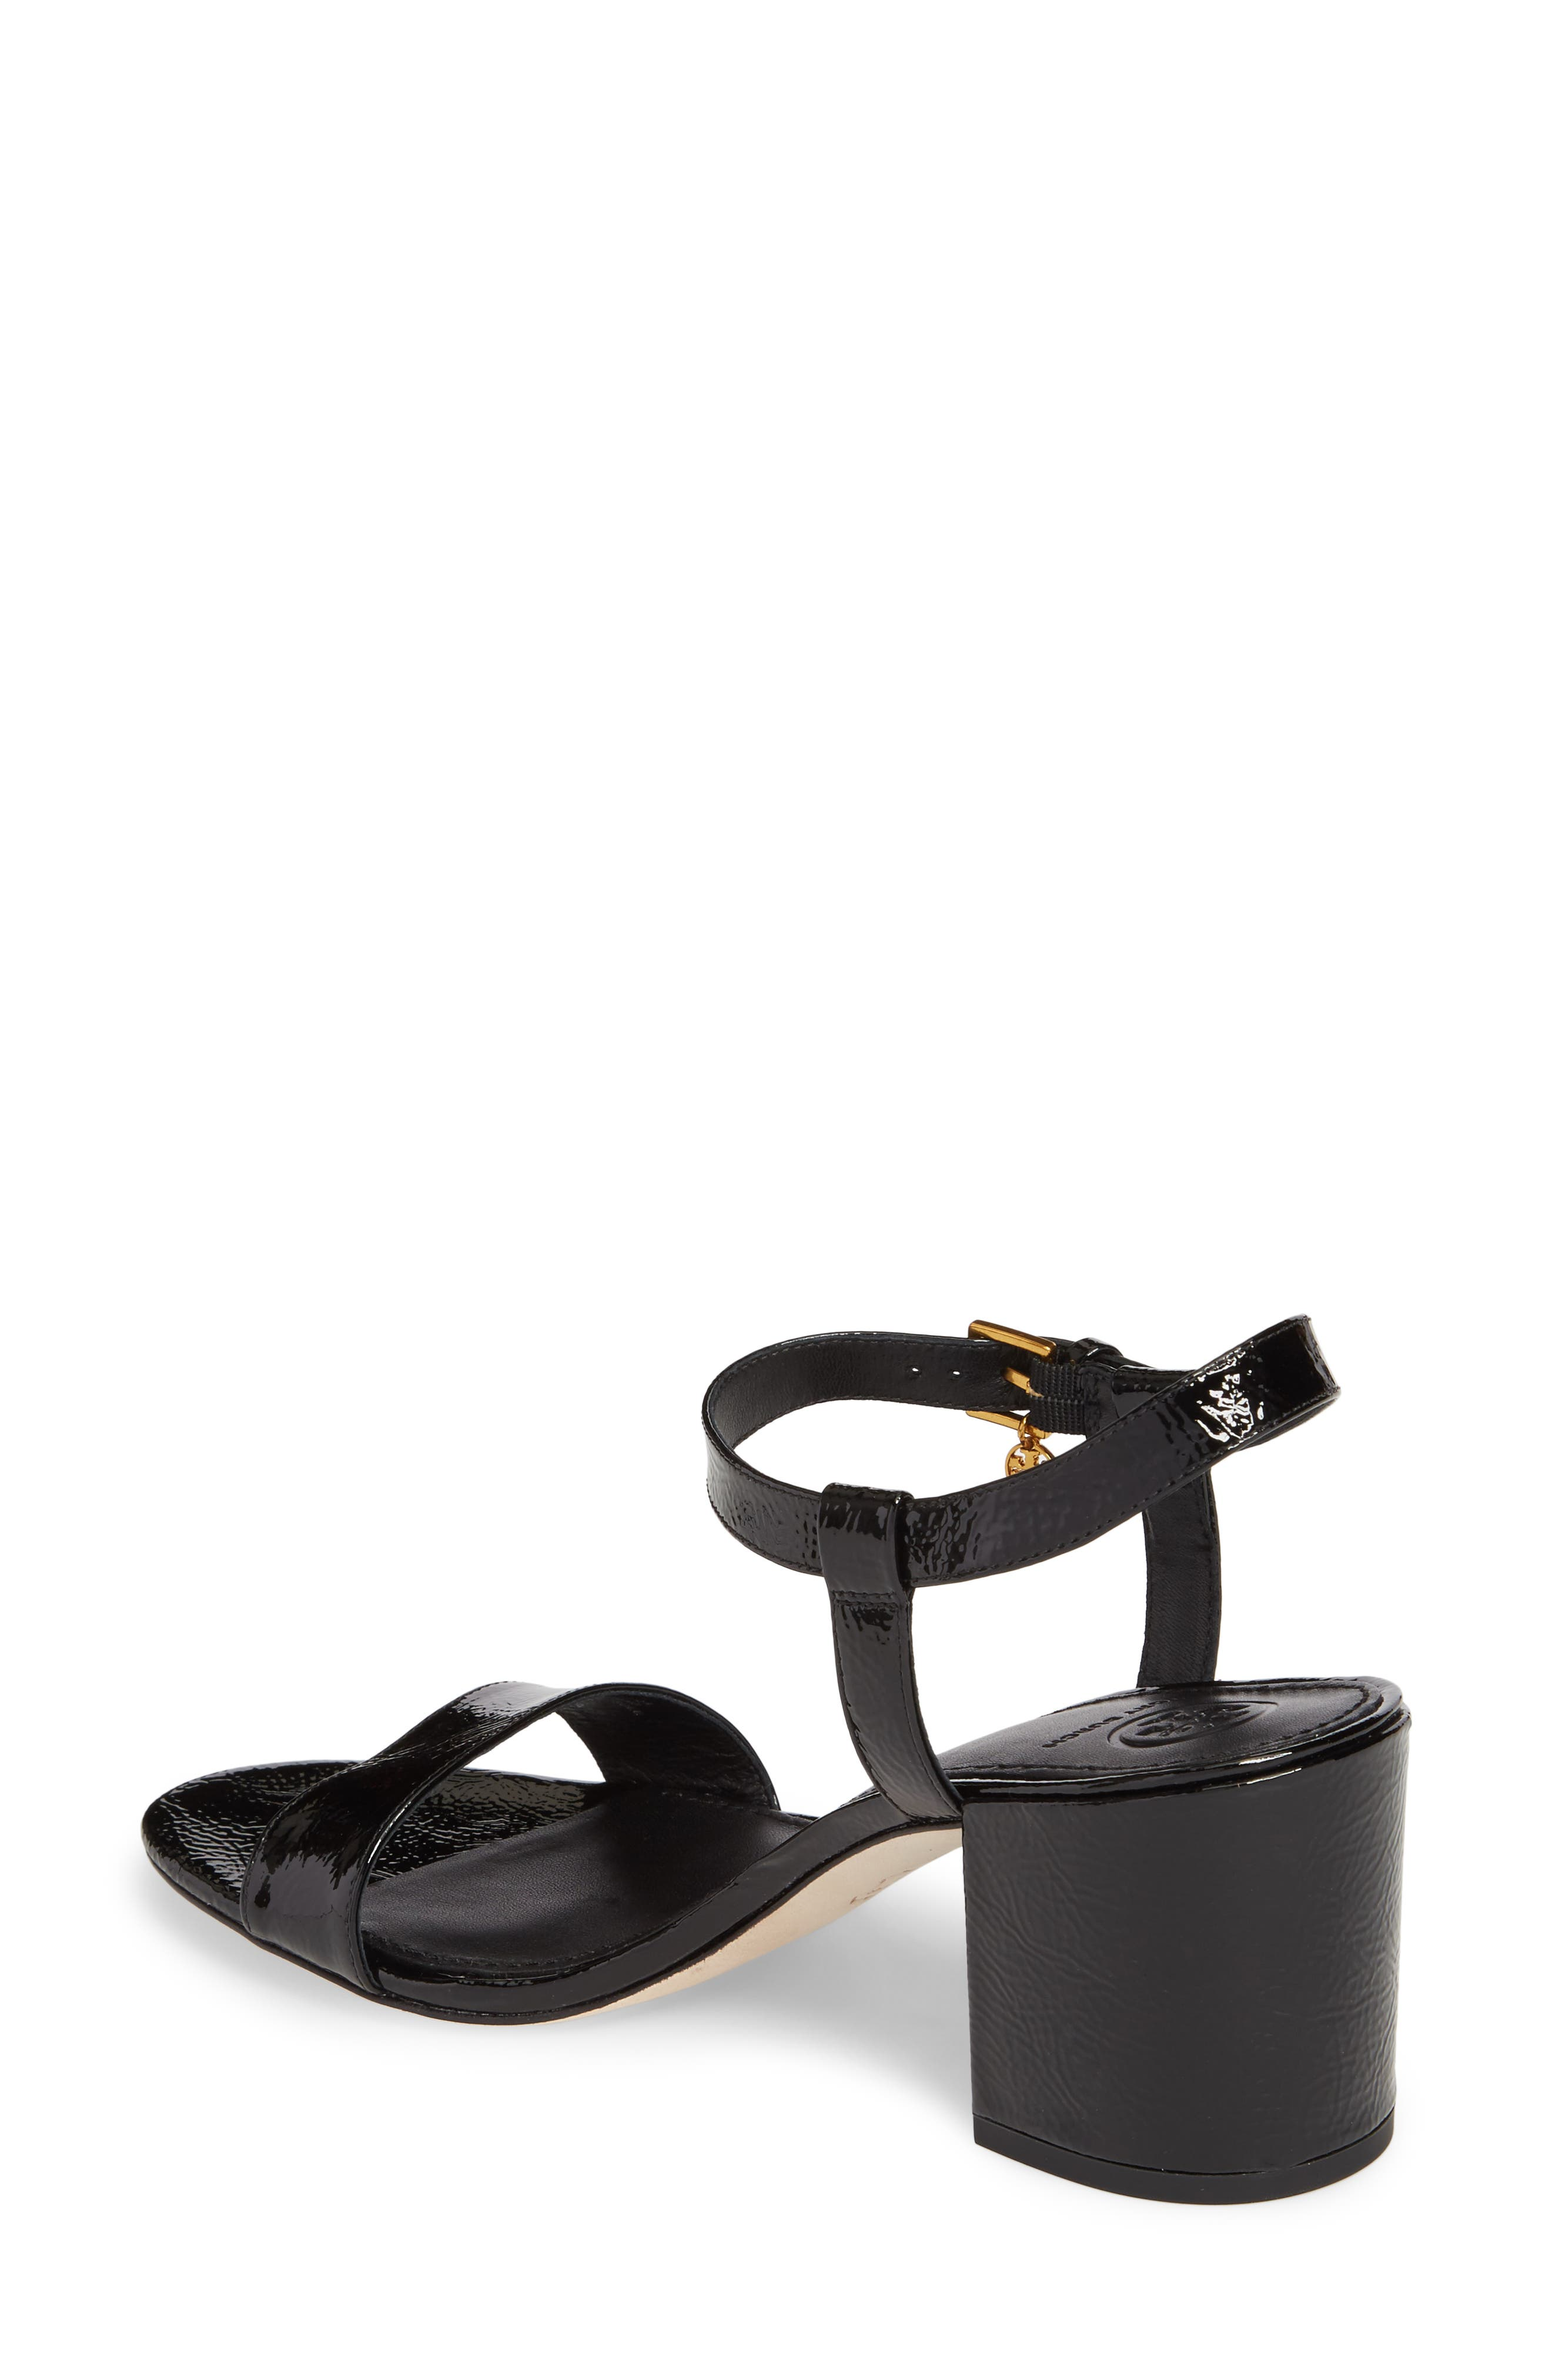 Laurel Ankle Strap Sandal,                             Alternate thumbnail 2, color,                             BLACK